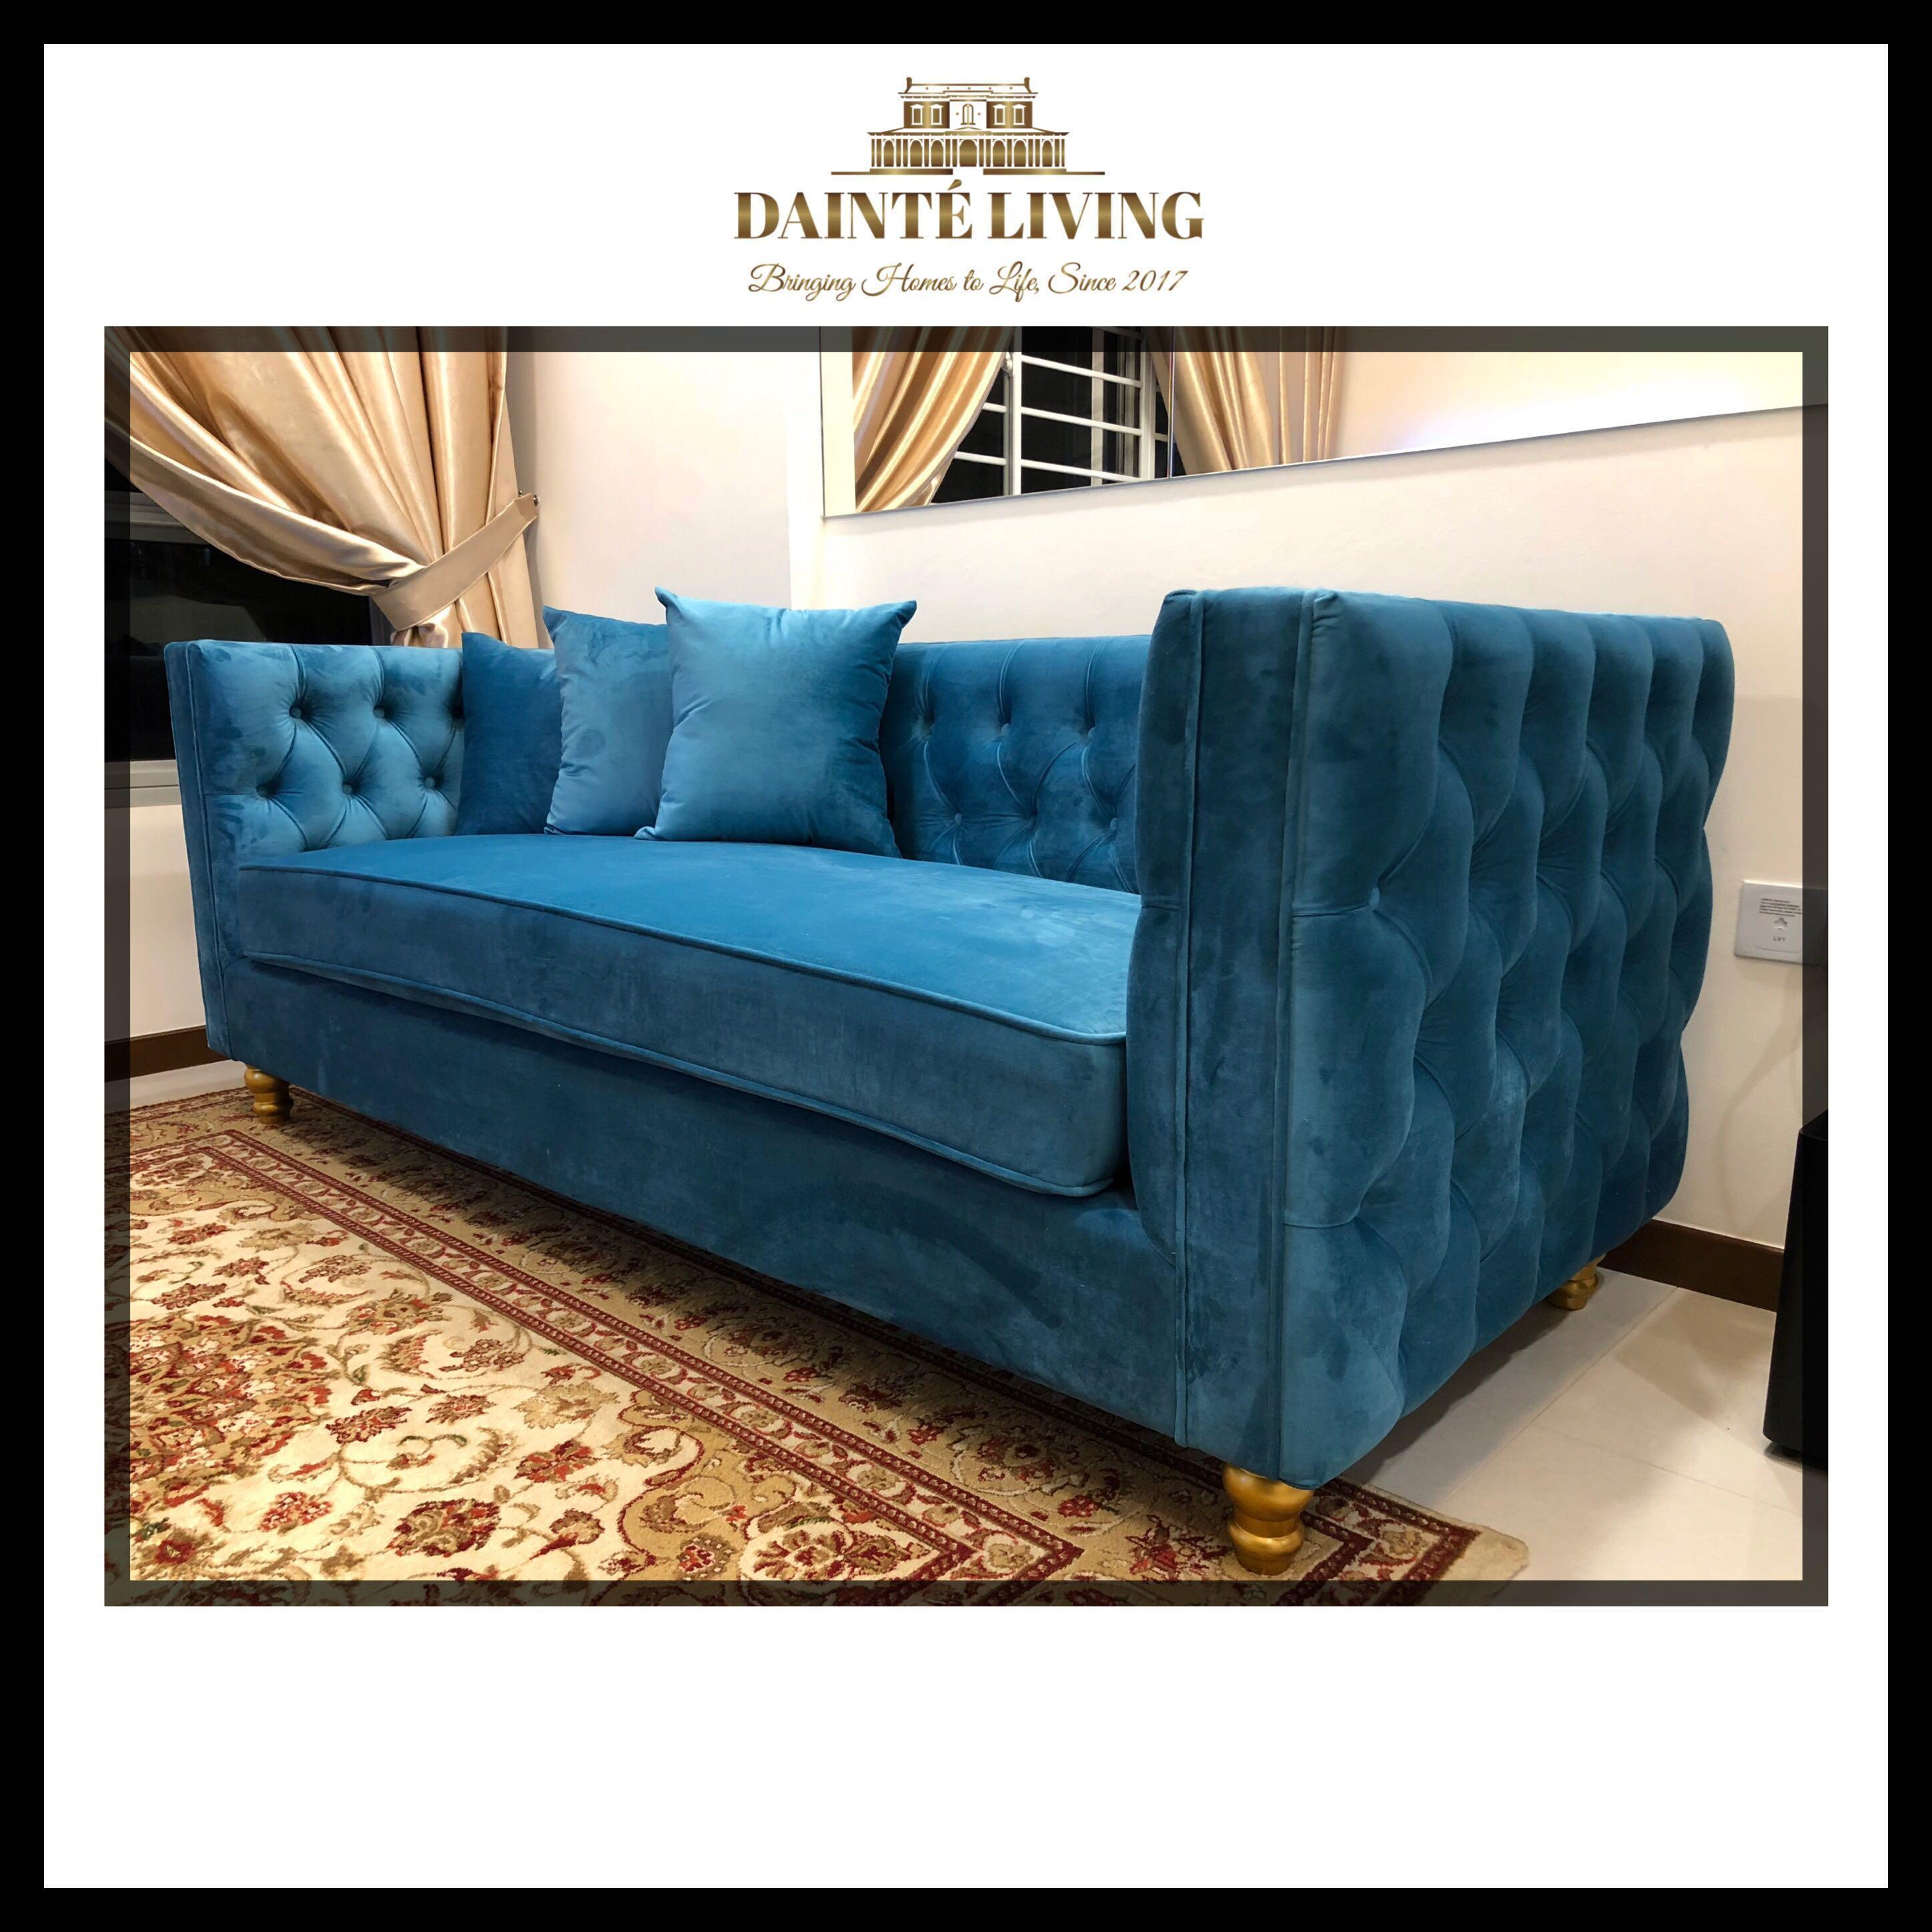 Clients Archive Modern Classic Tufted Sofa Bespoke Furniture